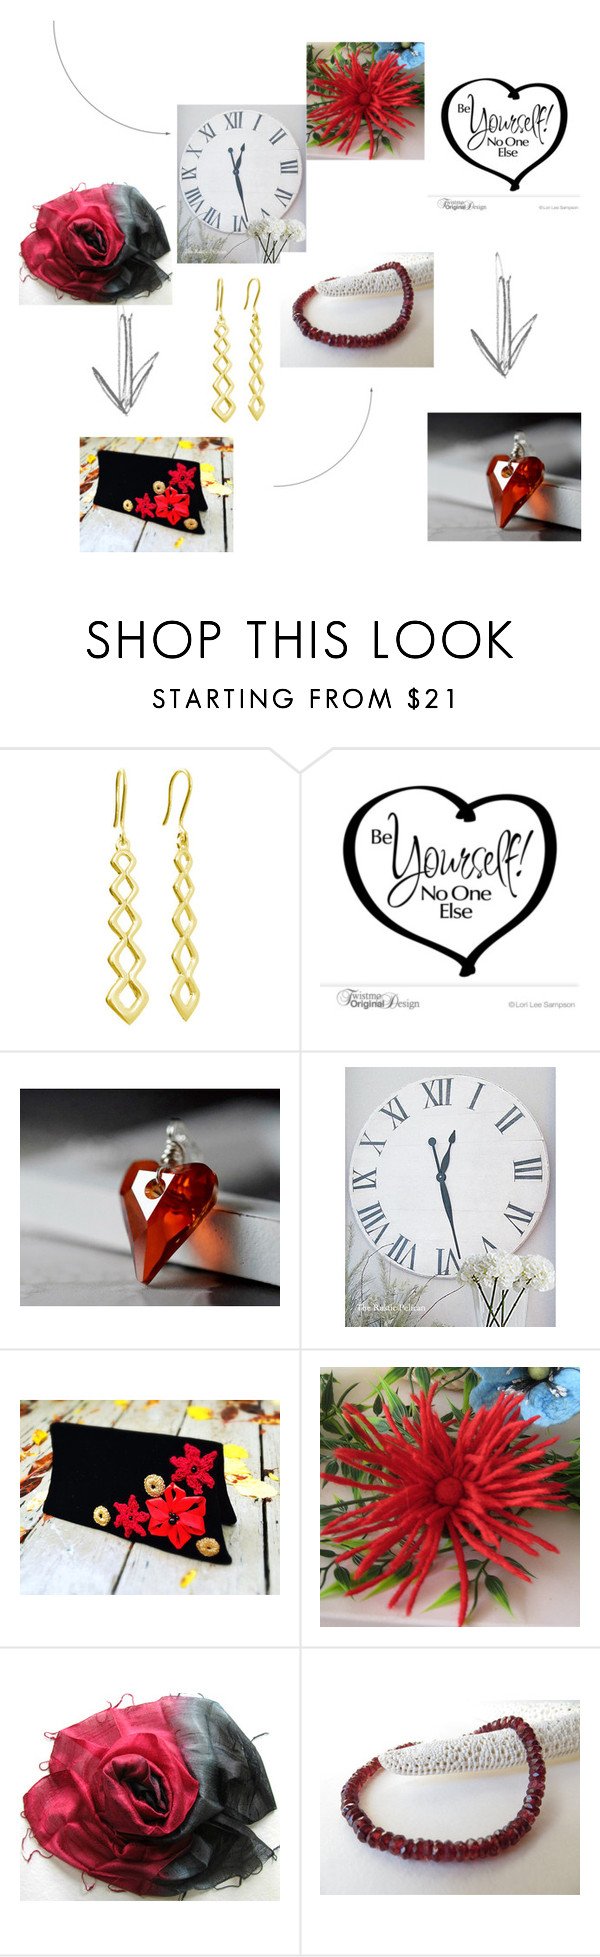 Ready for RED! by msbsdesigns on Polyvore featuring Scialle, WALL and rustic